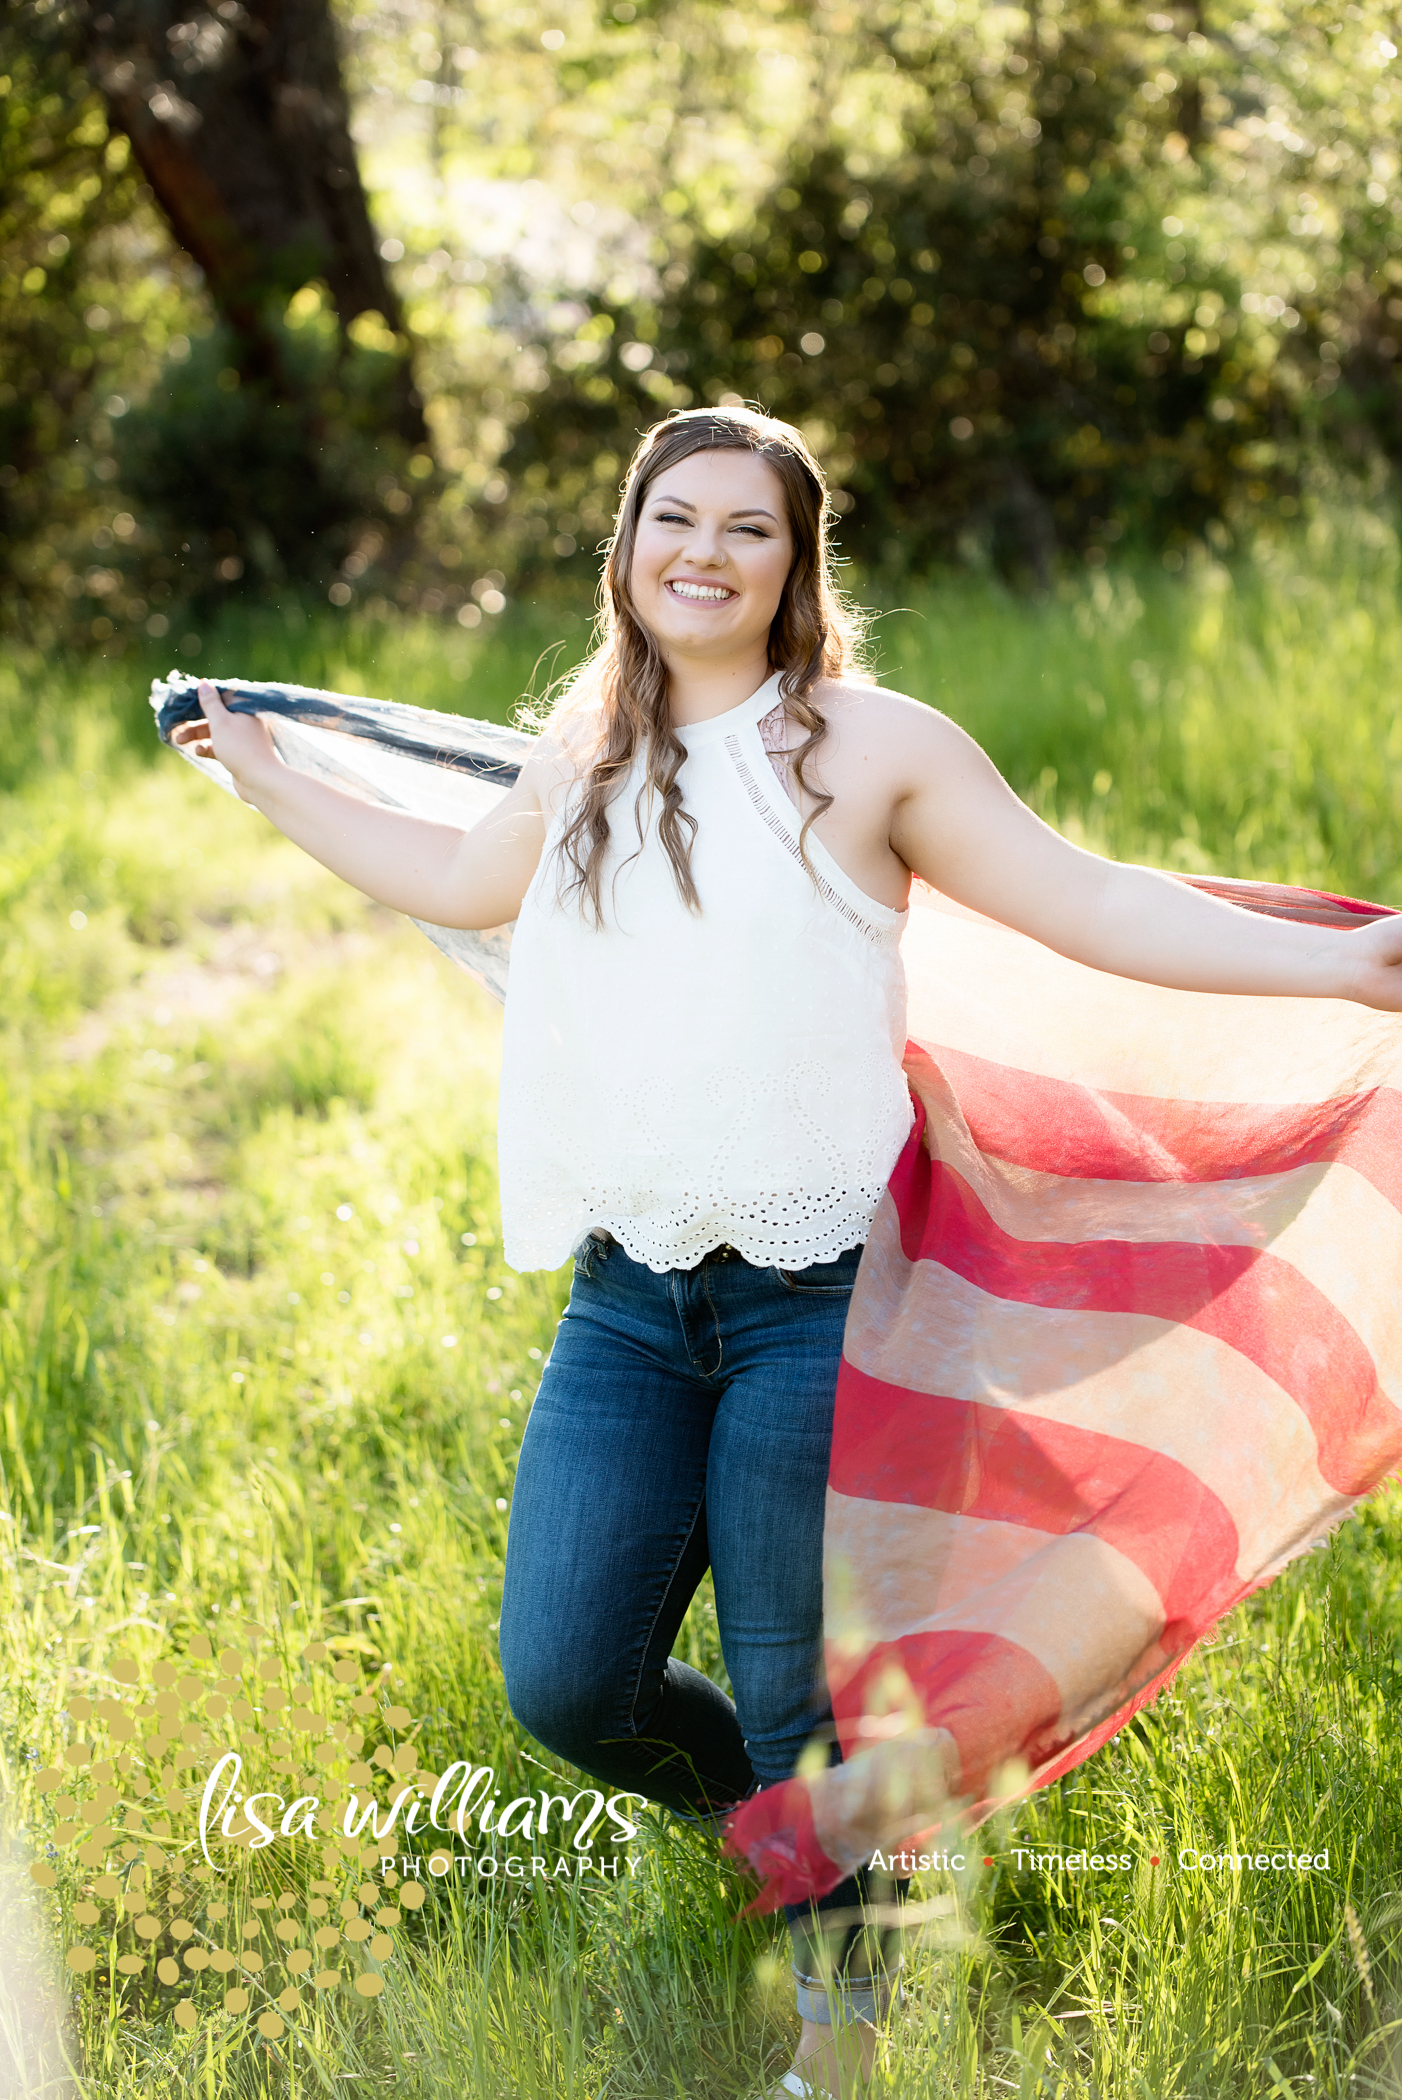 Lisa Williams photography – grass valley, Ca - Nevada county photographer – Colfax, CA – Rocklin – Roseville - Nevada City – Senior Portrait Photography – Alexa4.jpg